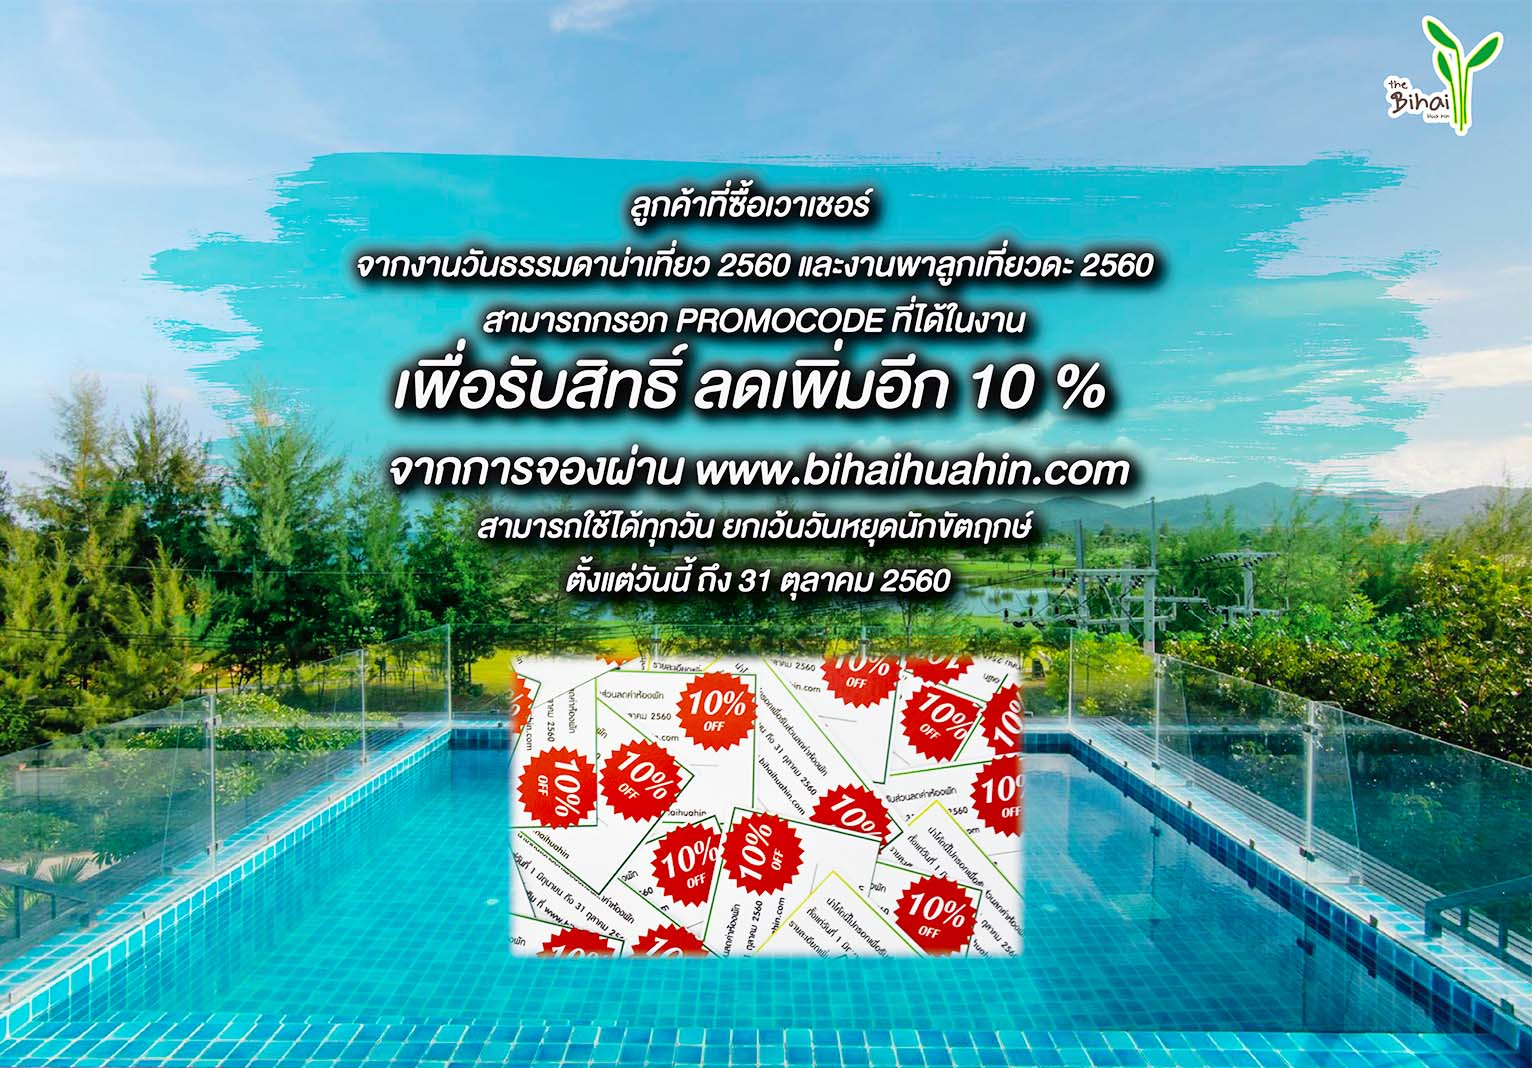 Promotions - The Bihai Hua Hin